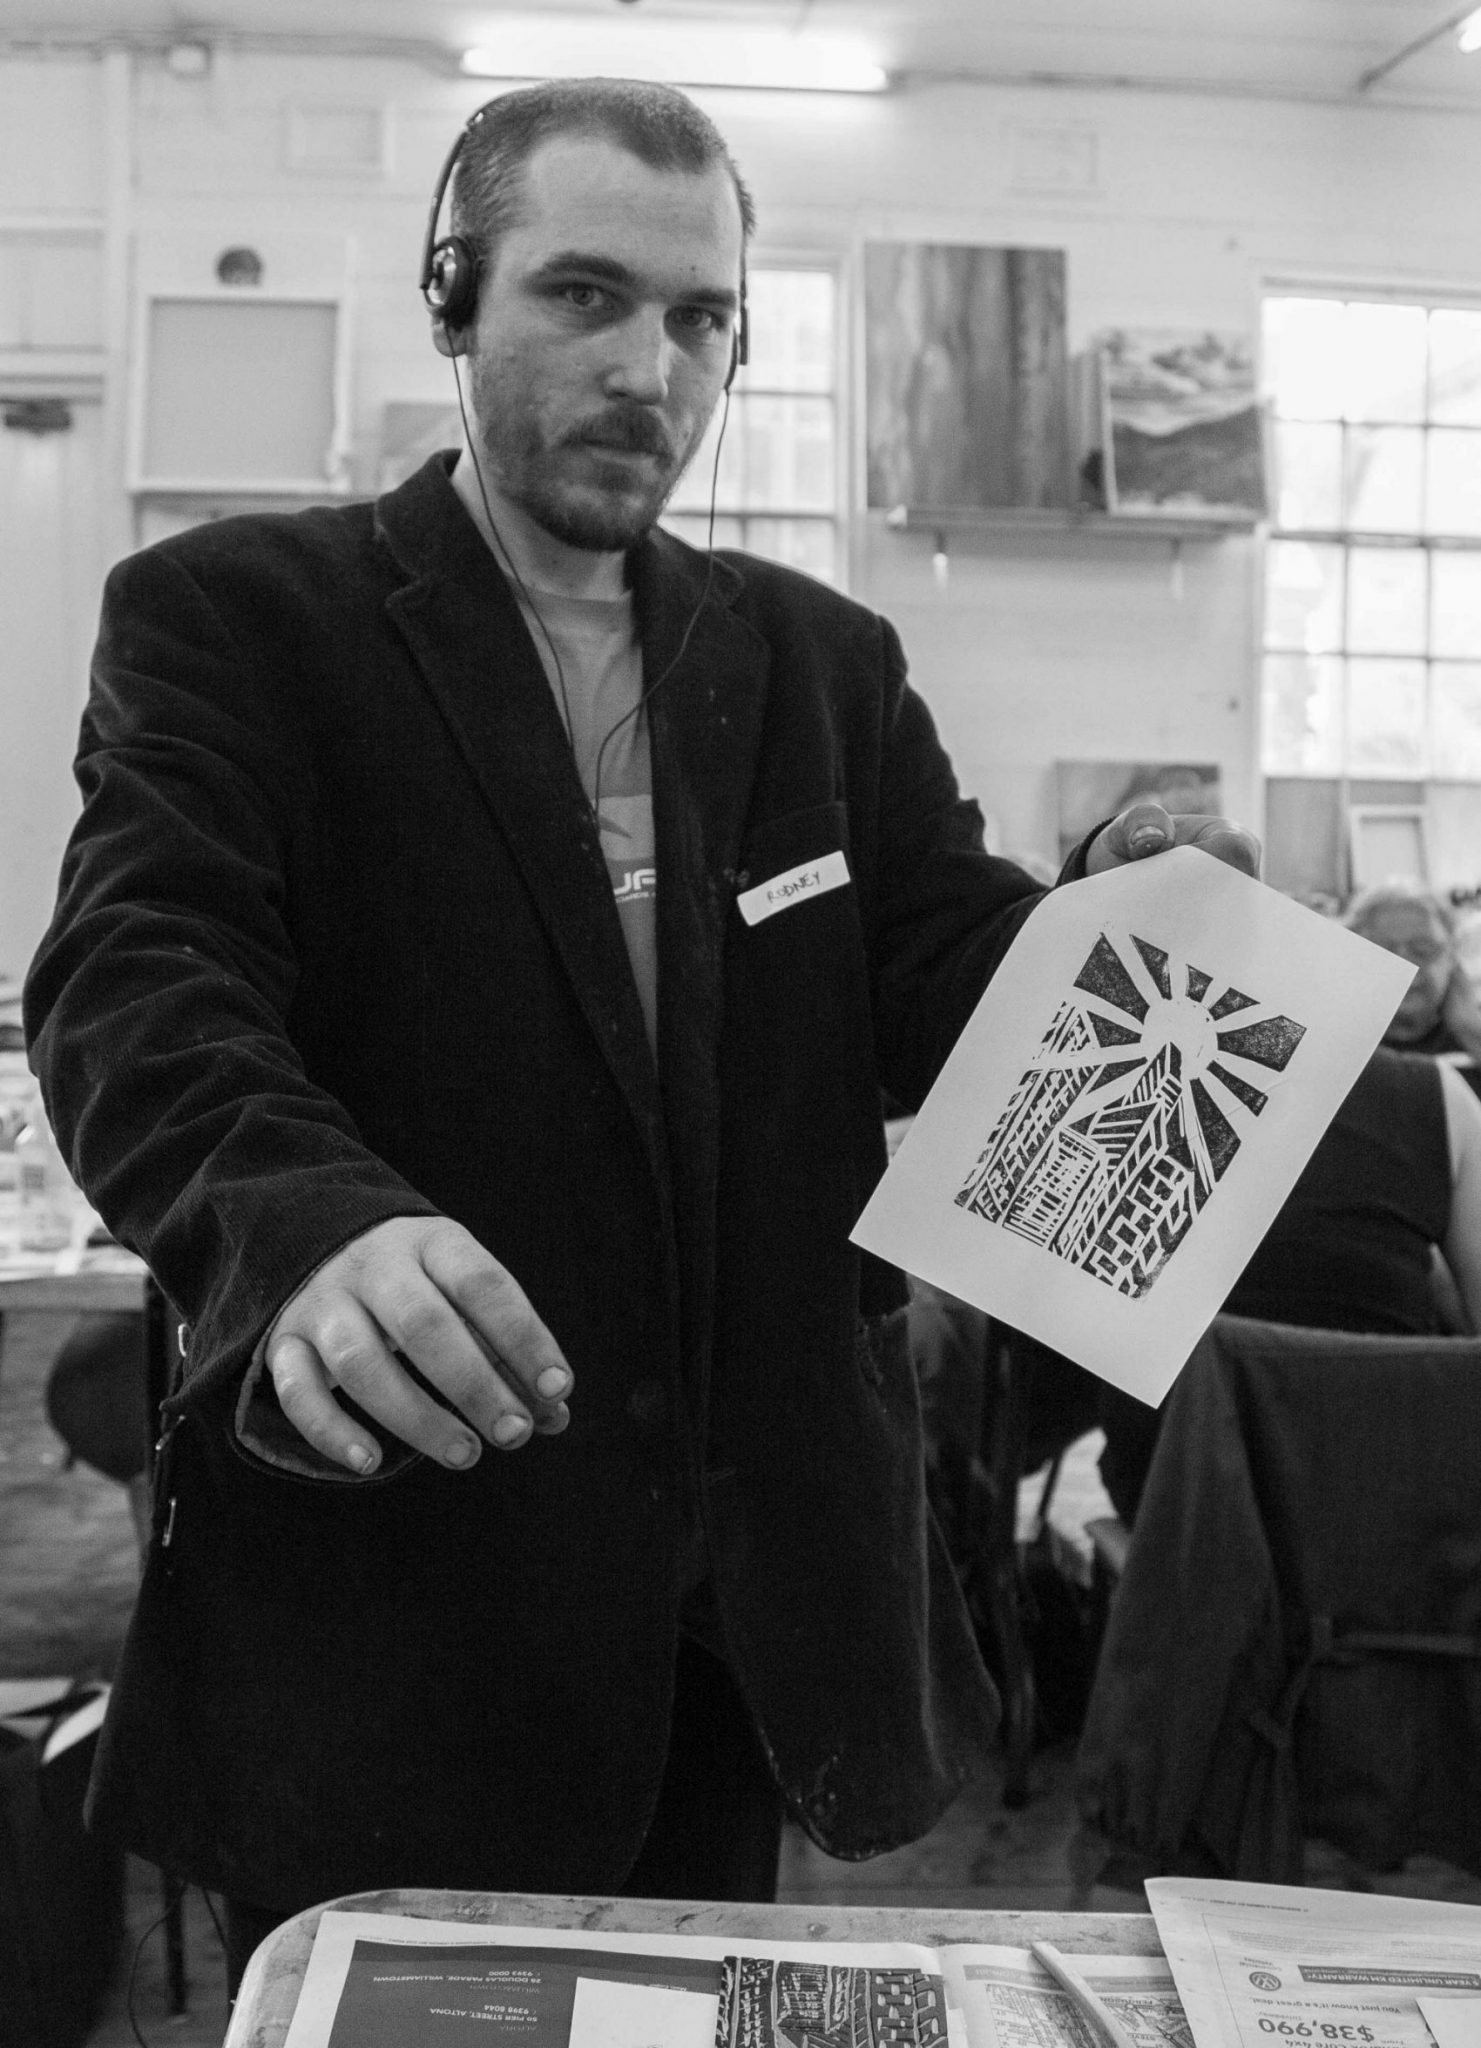 Open Canvas artist Rodney Mallee at a linocut workshop